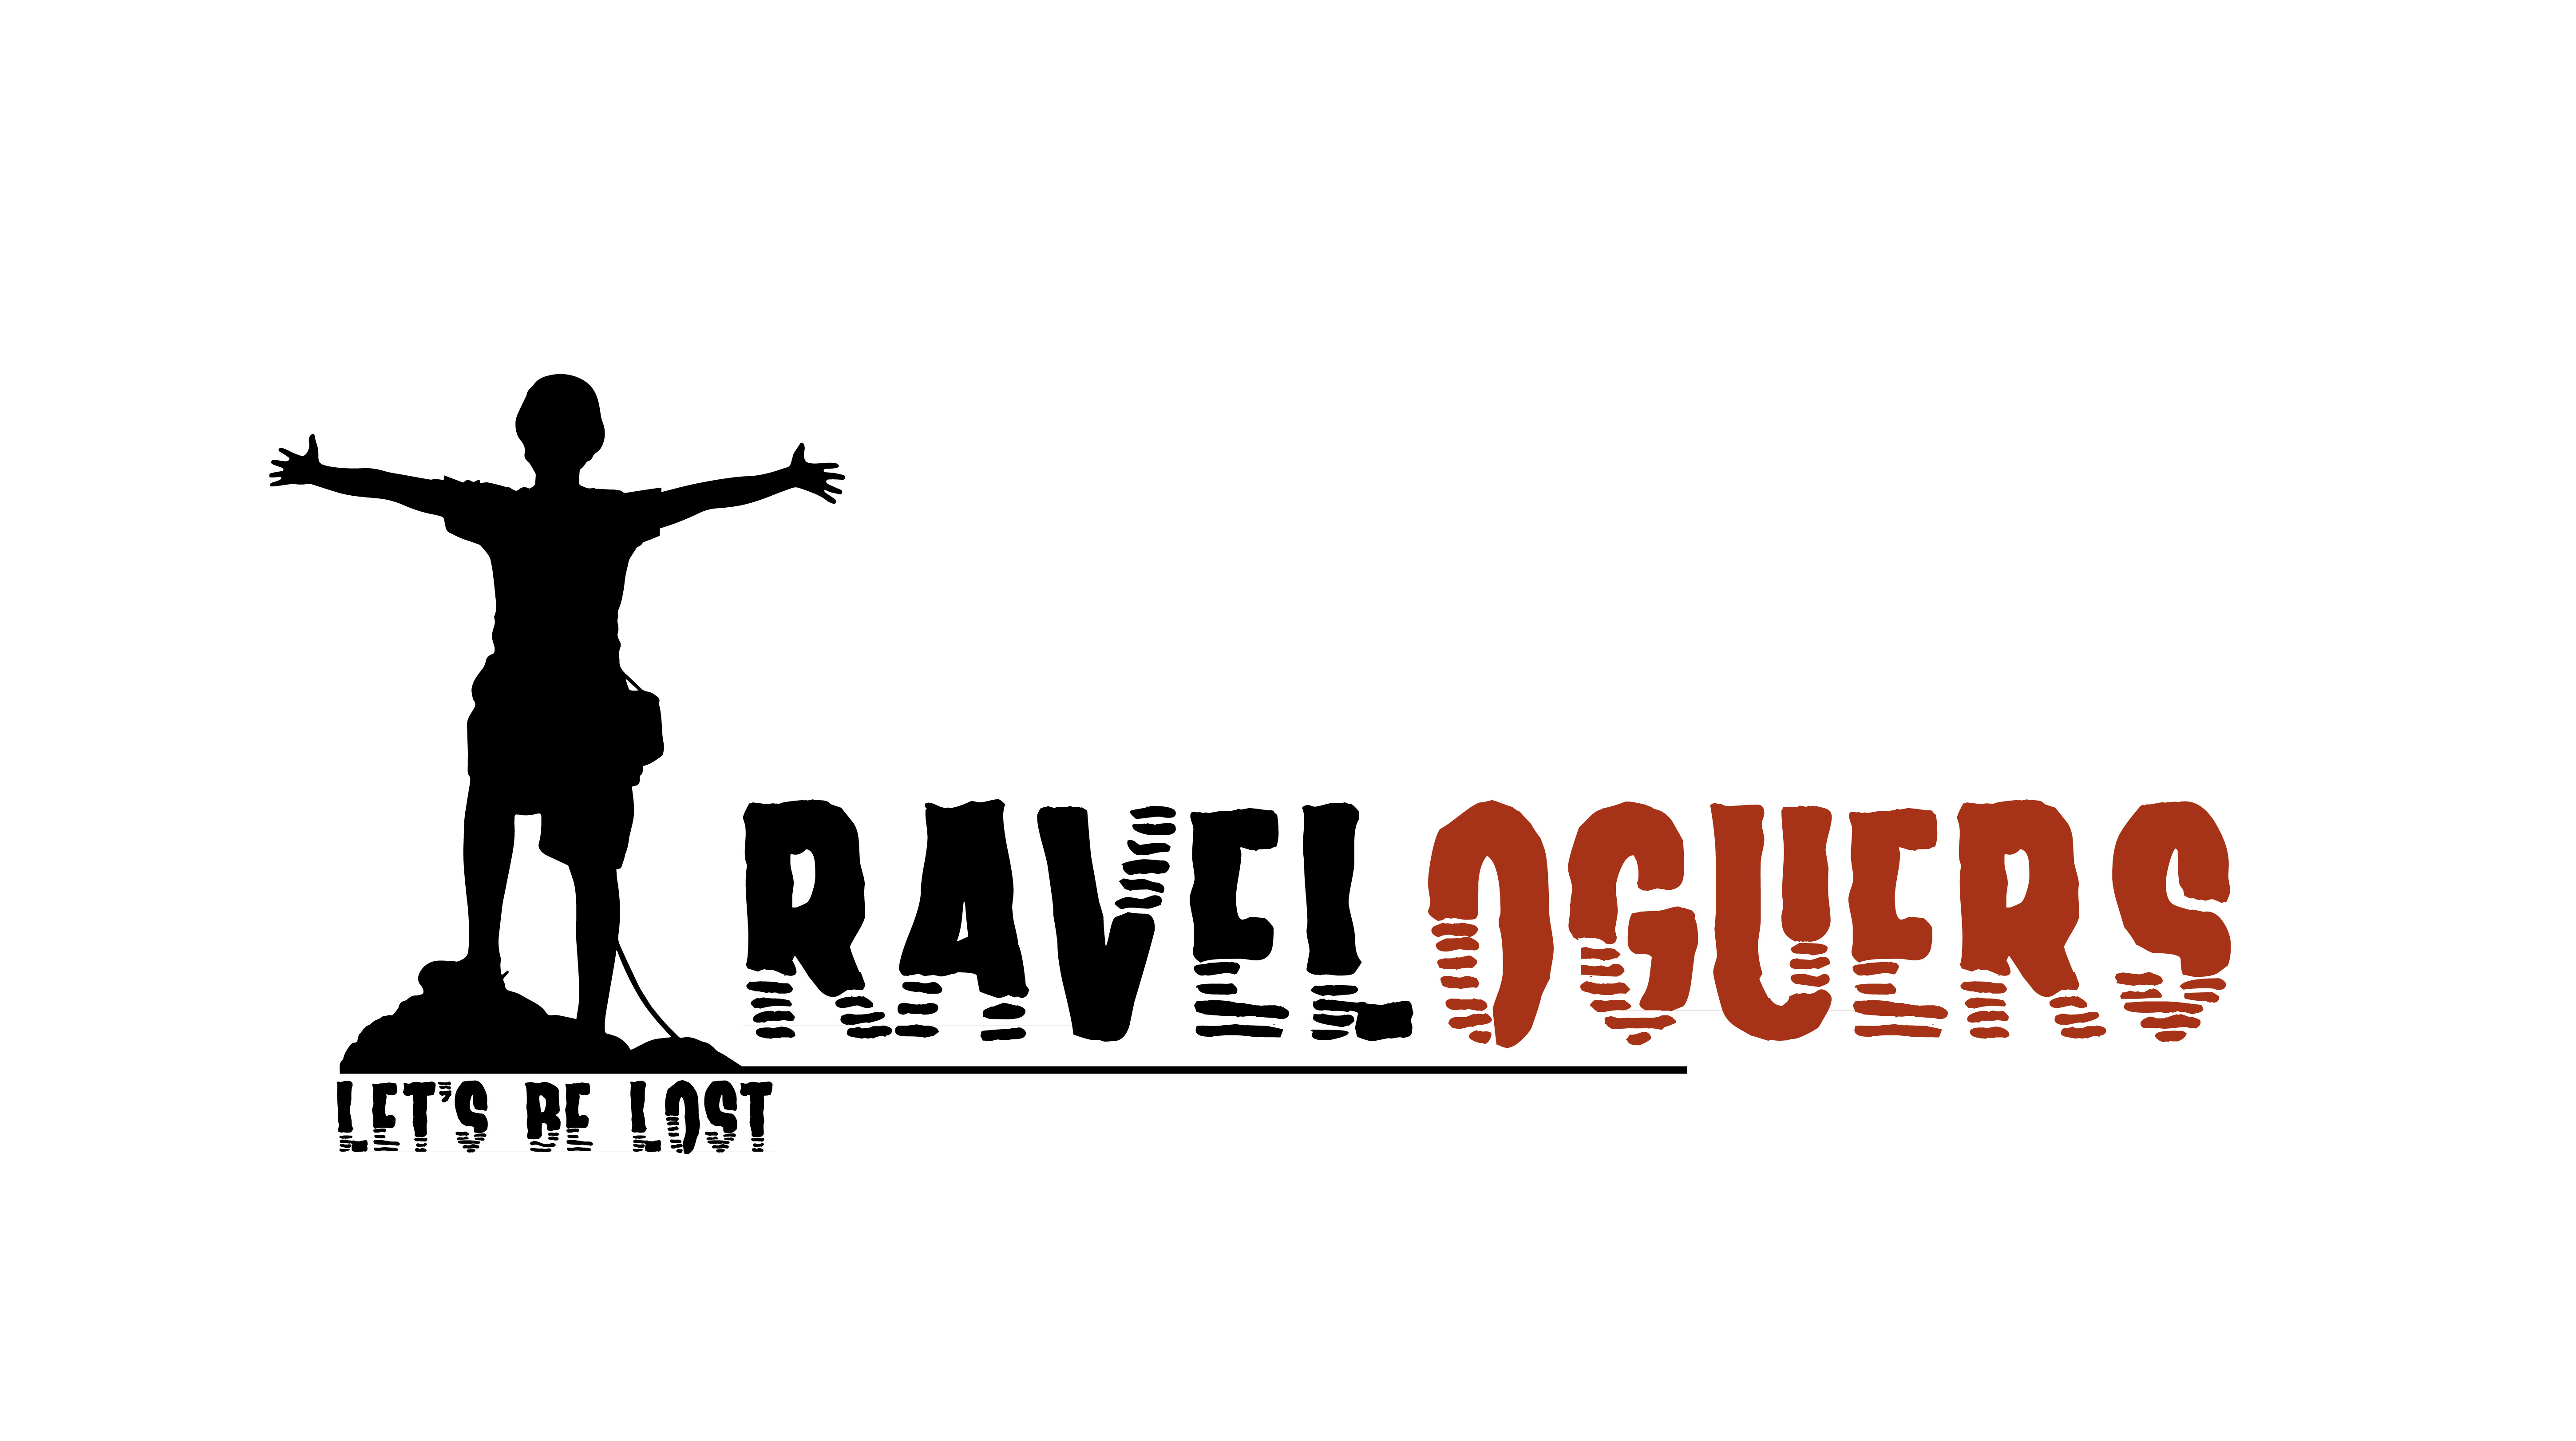 Traveloguers